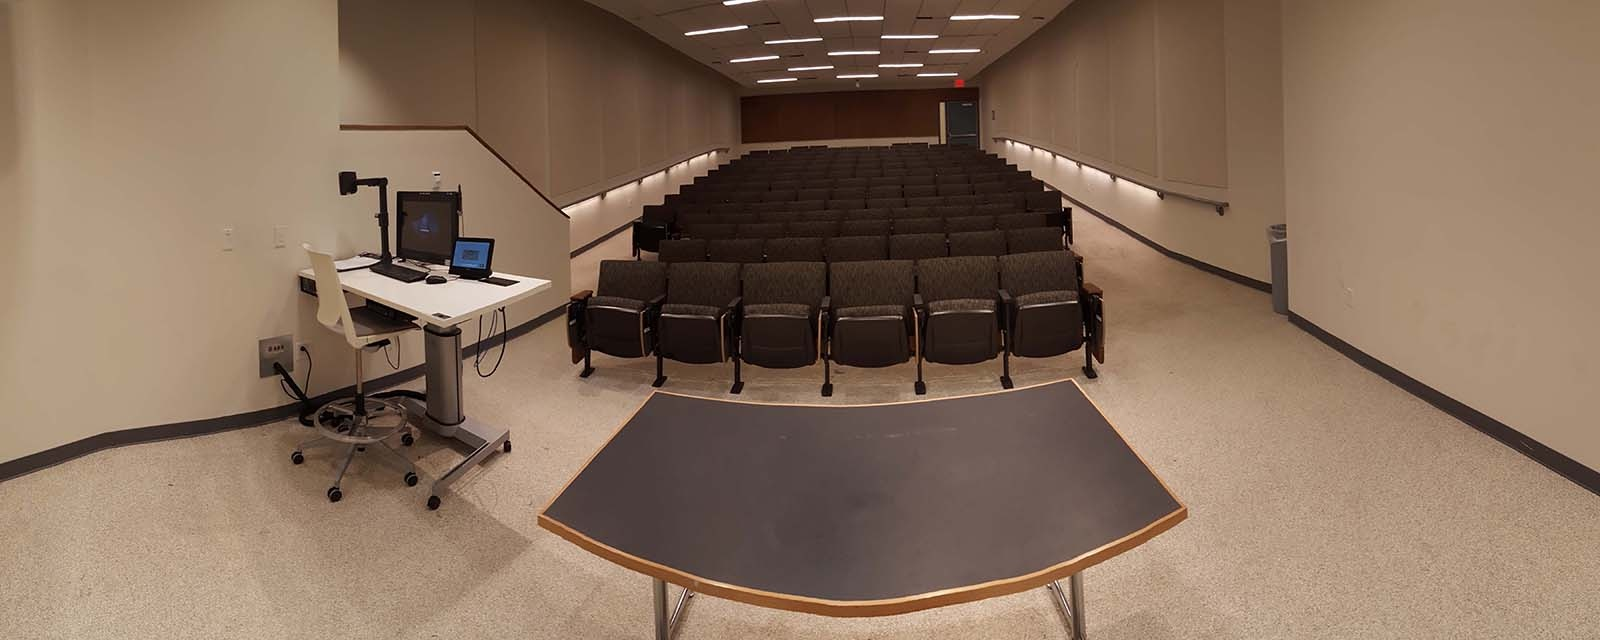 Panorama HBC Kittridge Auditorium from front of room to back of room, stadium seating, teaching station front left